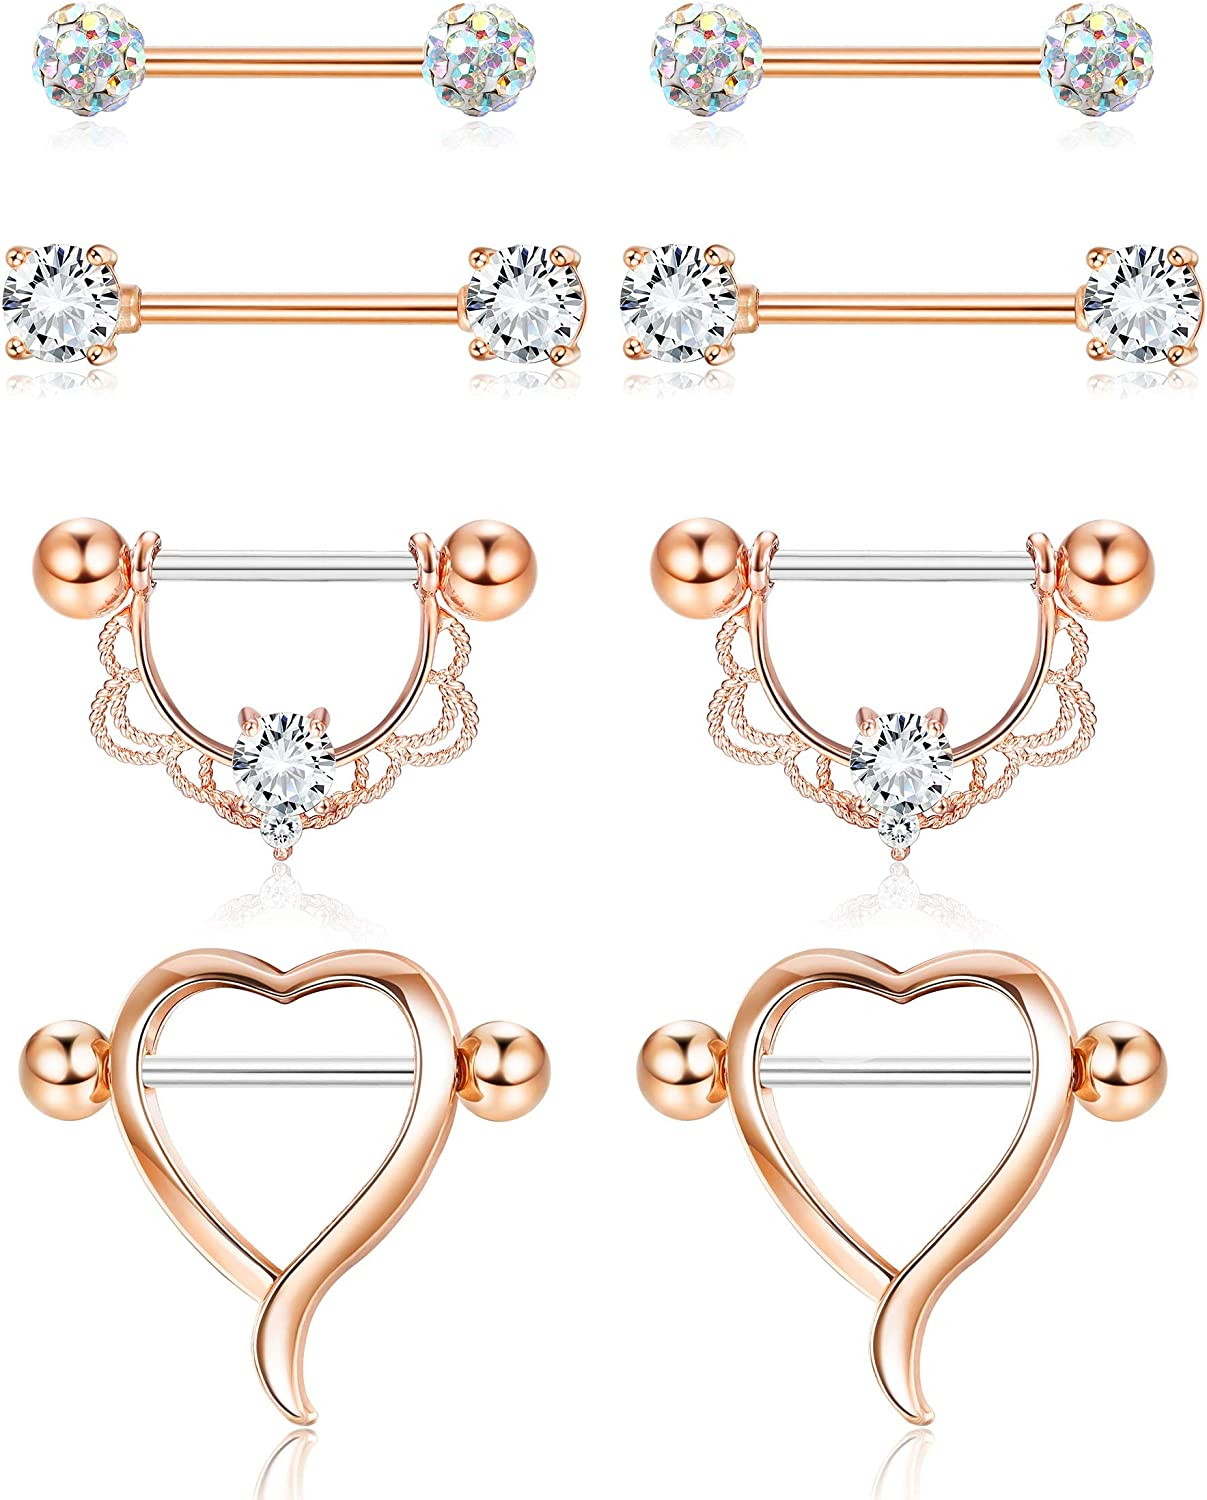 4 Pairs Stainless Steel Nipplerings CZ Opal Nipple Tongue Rings Barbells Body Piercing Jewelry for Women Girls 14G